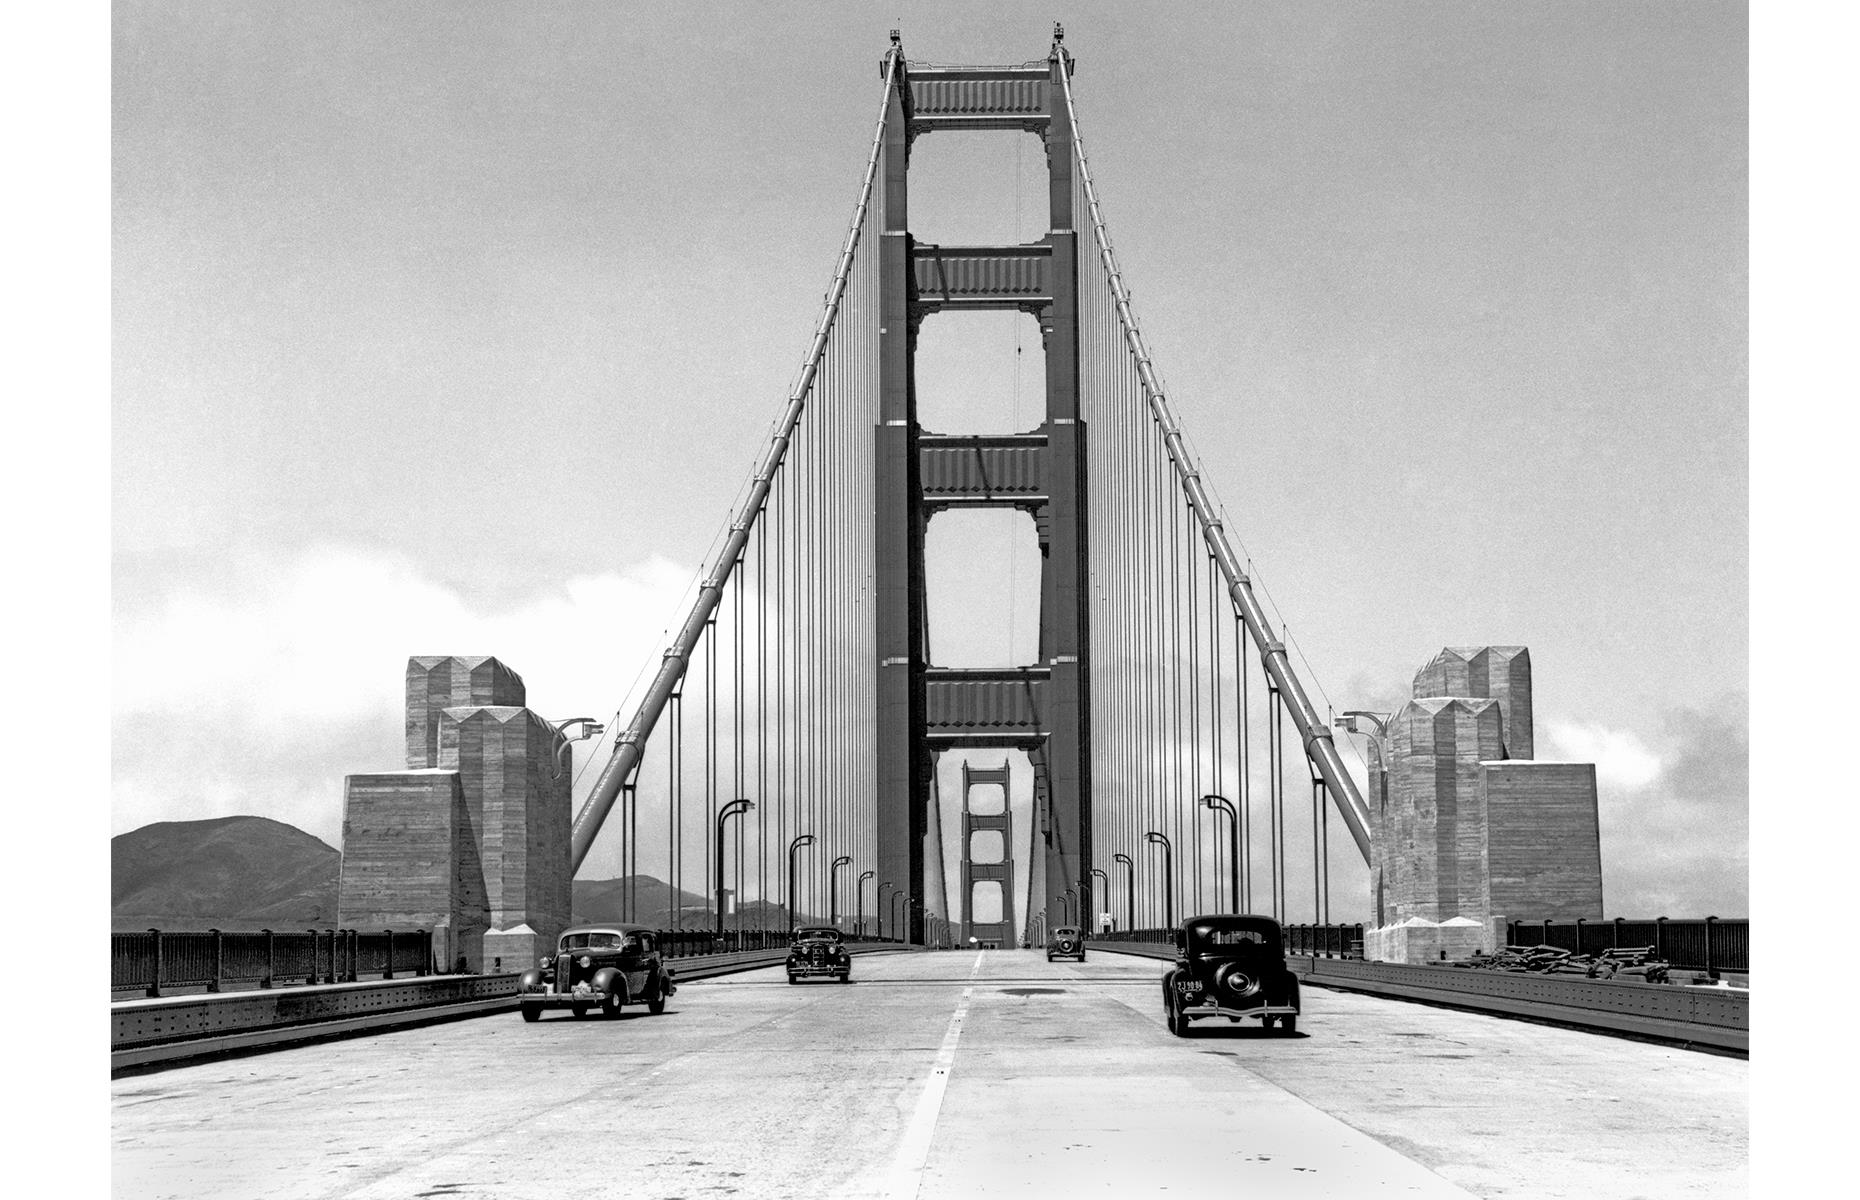 Slide 44 of 47: The epic bridge was eventually completed in 1937, and opened to traffic in May of that same year. Journalists were among the first to take a drive across the mammoth expanse – a handful of press cars are pictured here on 24 May 1937, a few days before the structure's official opening date.